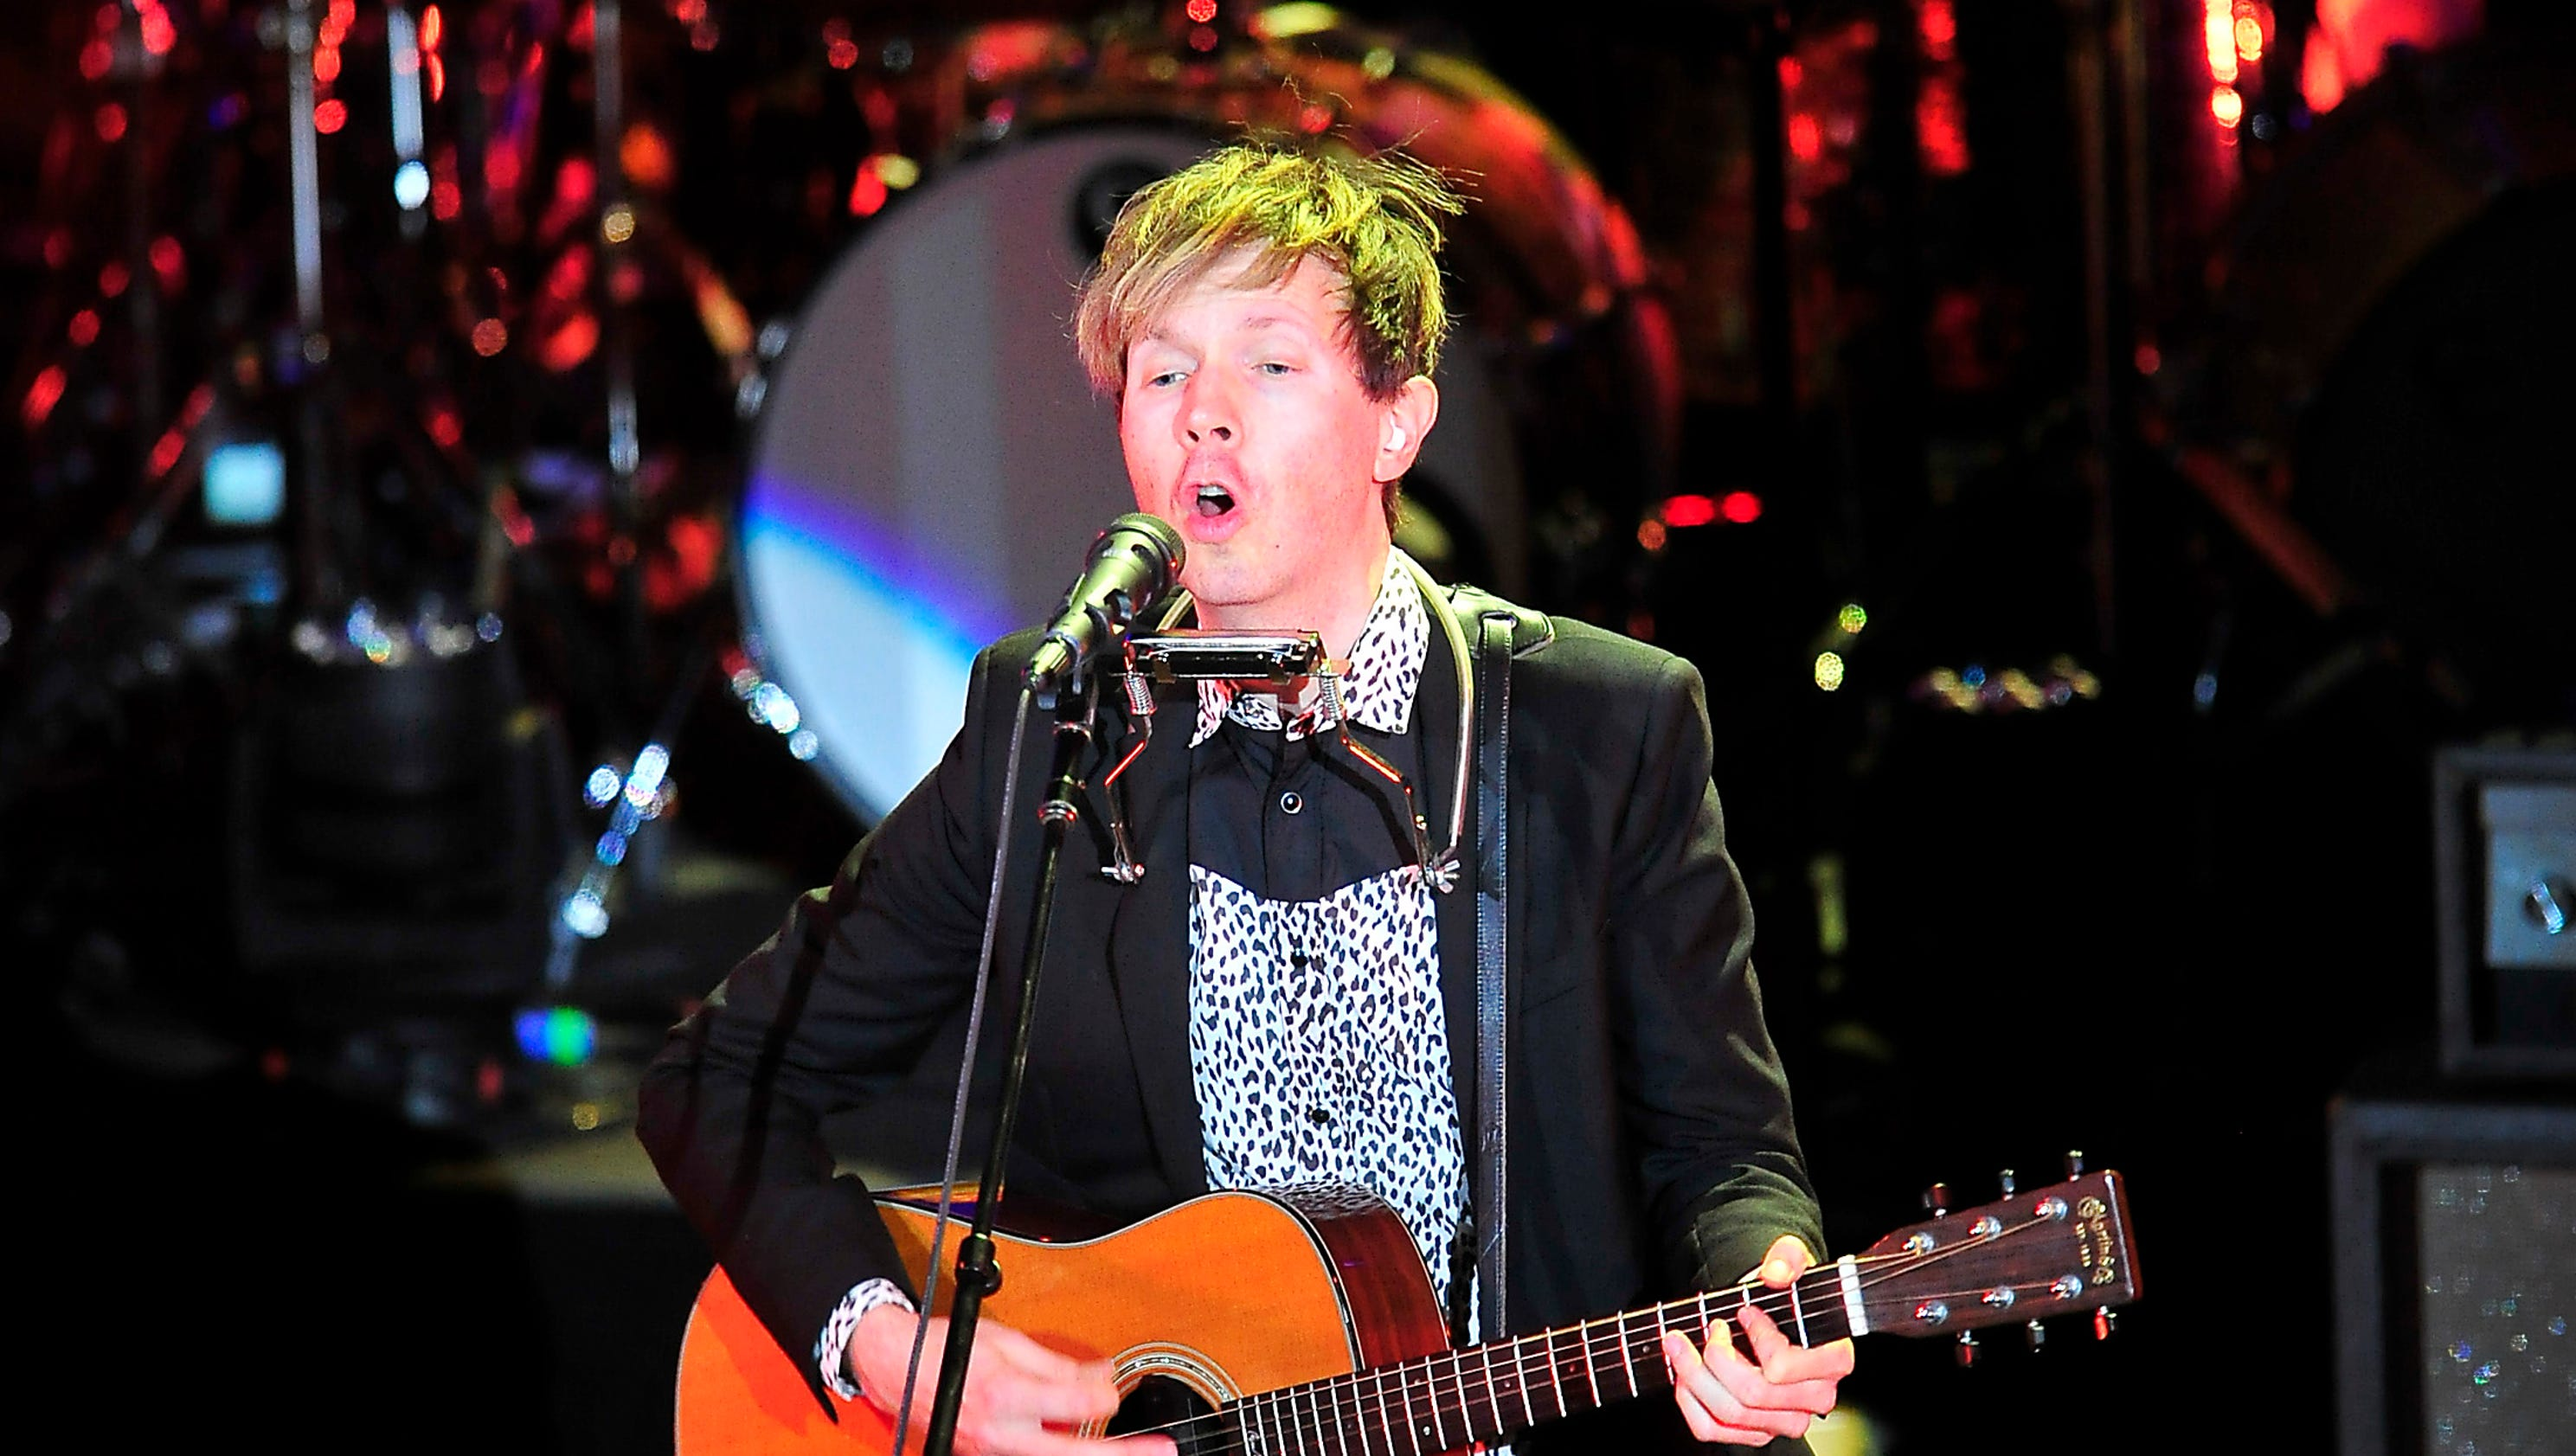 the life of the musical genius beck hansen Beck's music is on the spectrum  beck hansen's musical brain makes me  swooon  some tout him as a musical genius and this is a tribute to him  live  life like a movie and let the music move you -alternative nation  music.